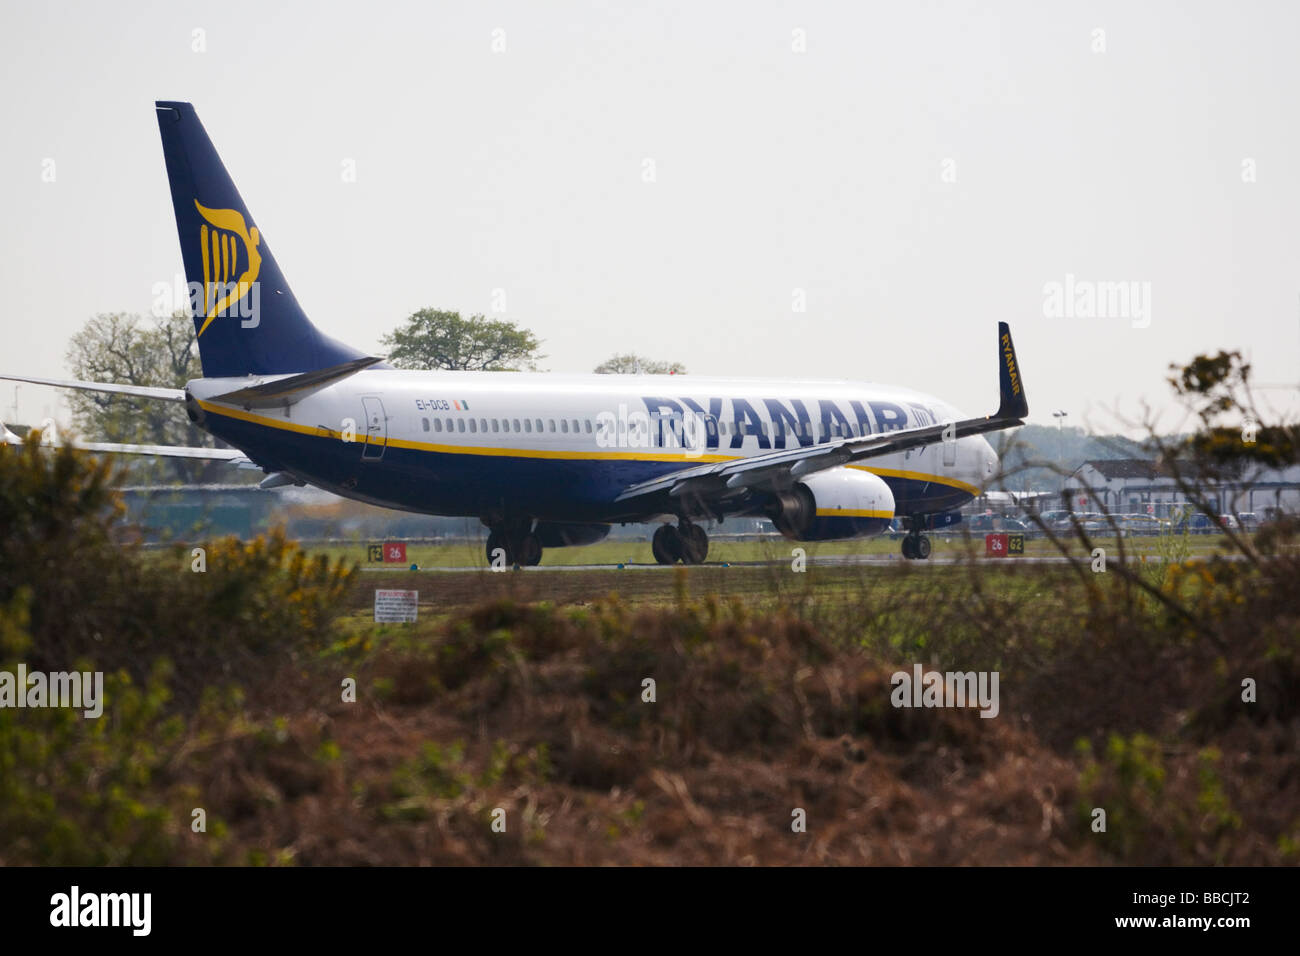 Ryanair aircraft, a Boeing 737-8AS, lining up on the runway, ready for take off at Bournemouth Airport. Dorset. - Stock Image